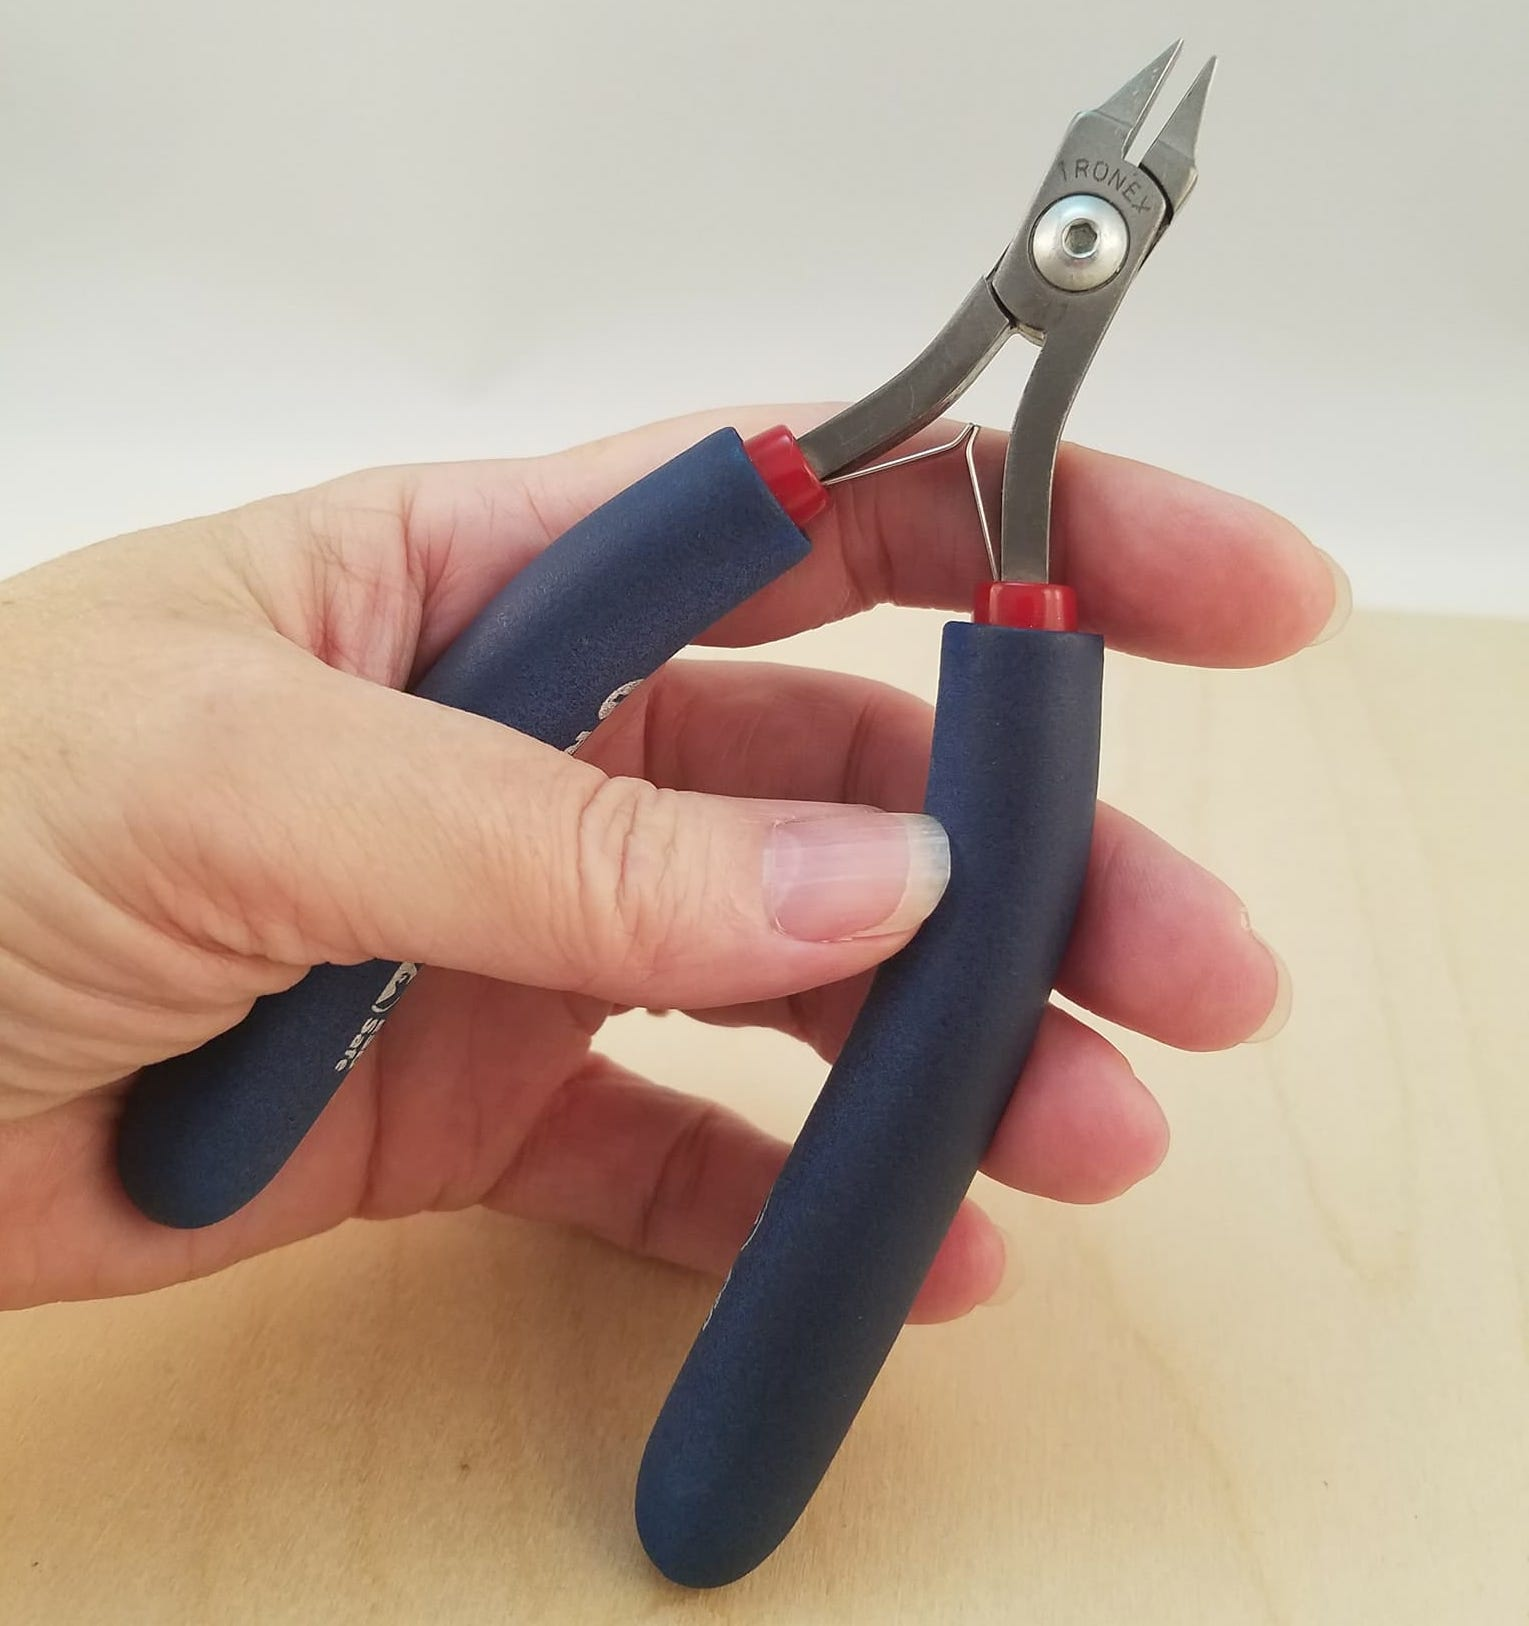 hand with tronex snub nose pliers